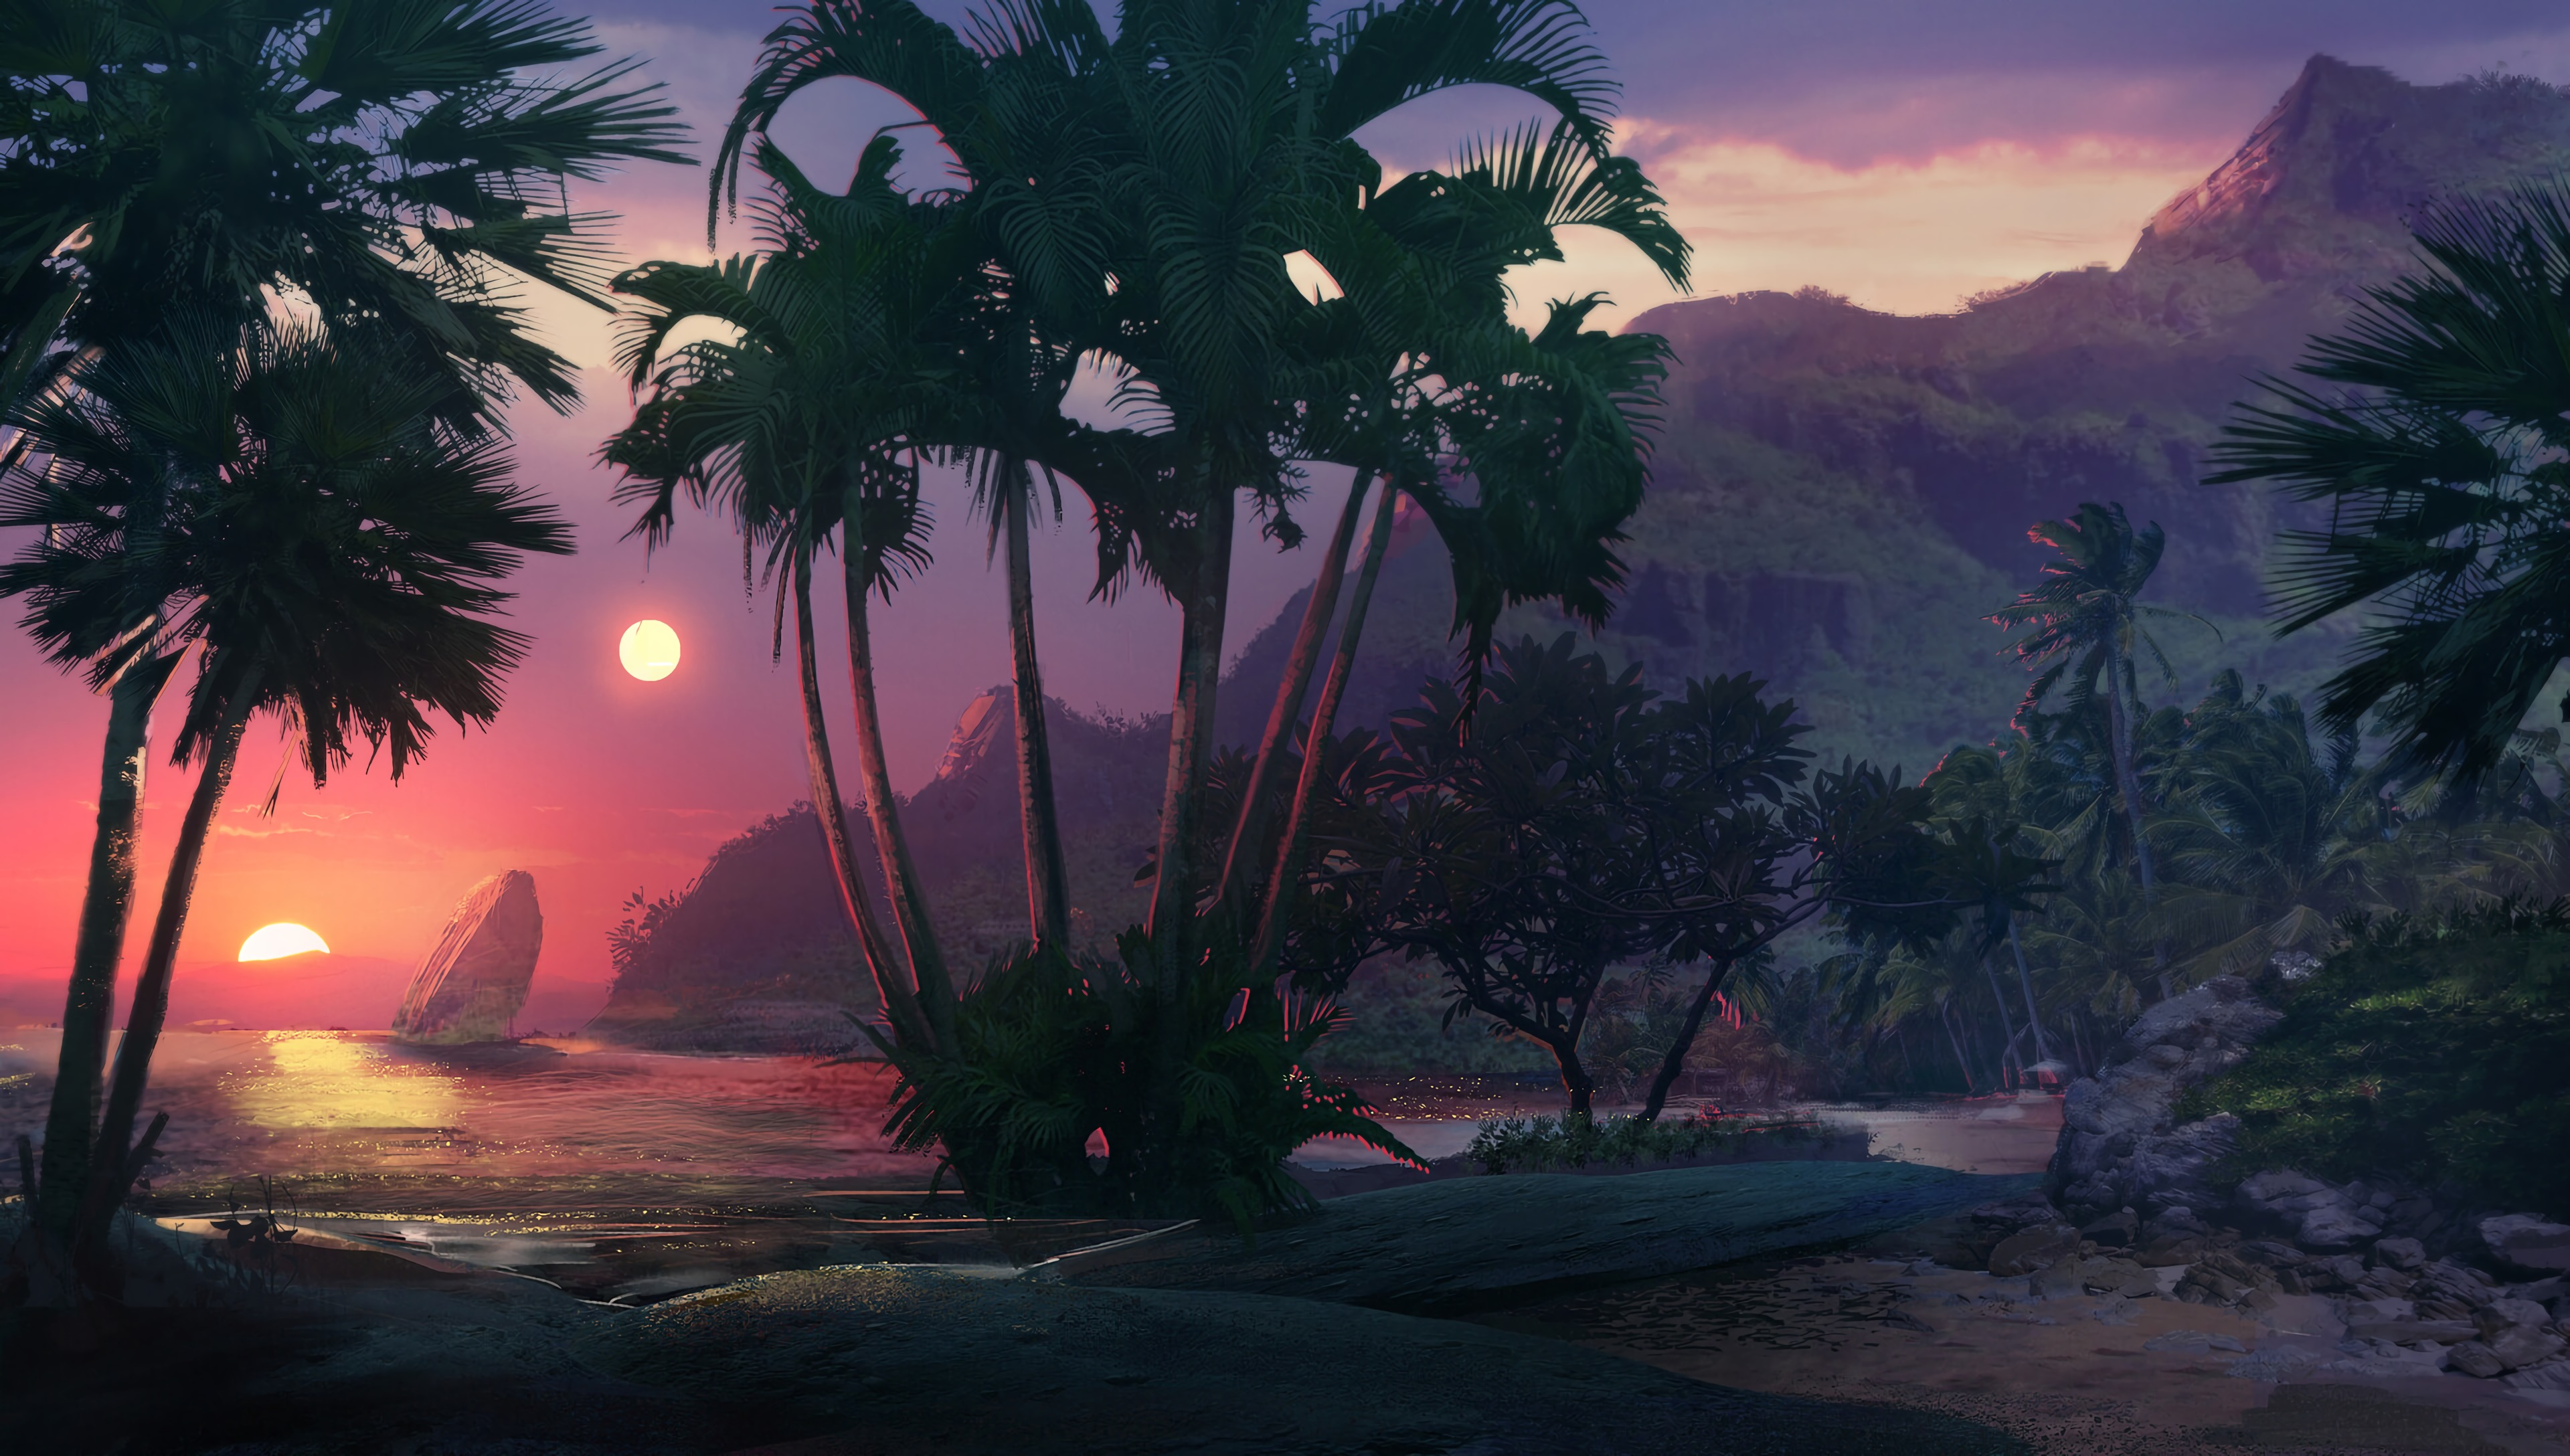 94769 download wallpaper Palms, Sunset, Art, Sea, Beach screensavers and pictures for free